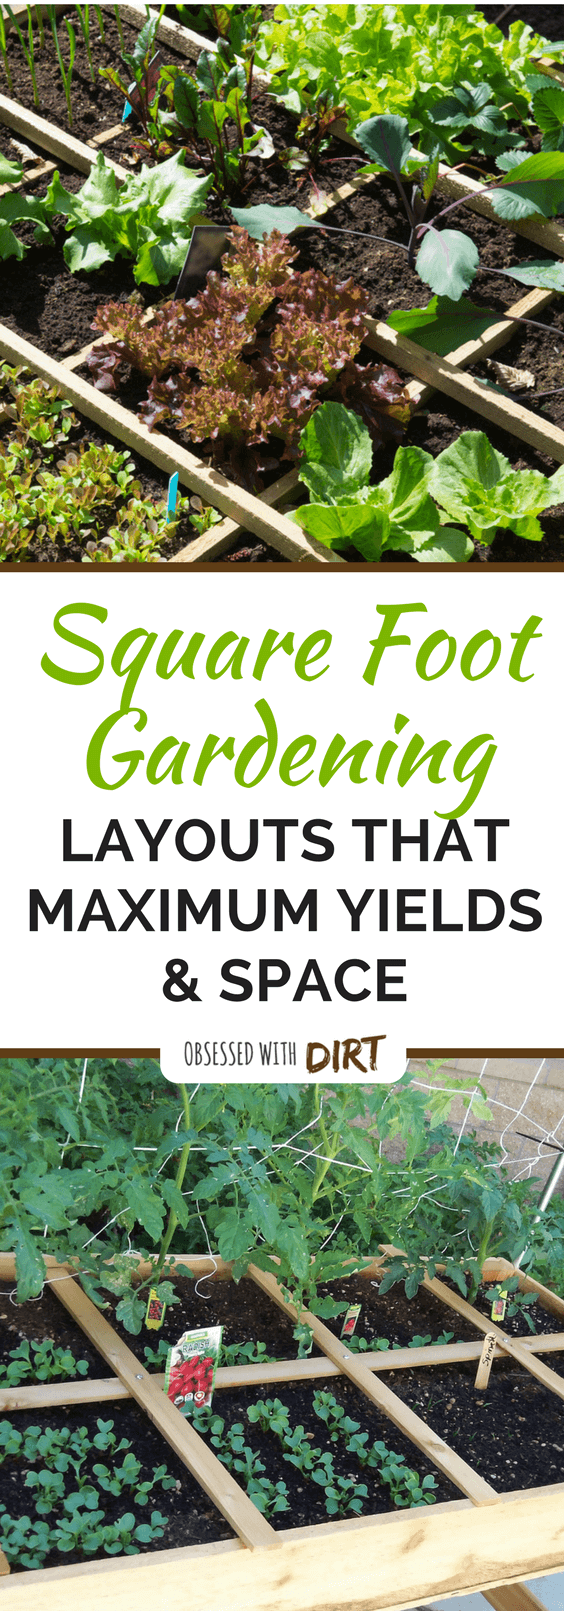 Square Foot Gardening: How To Plan Your New Vegetable ...